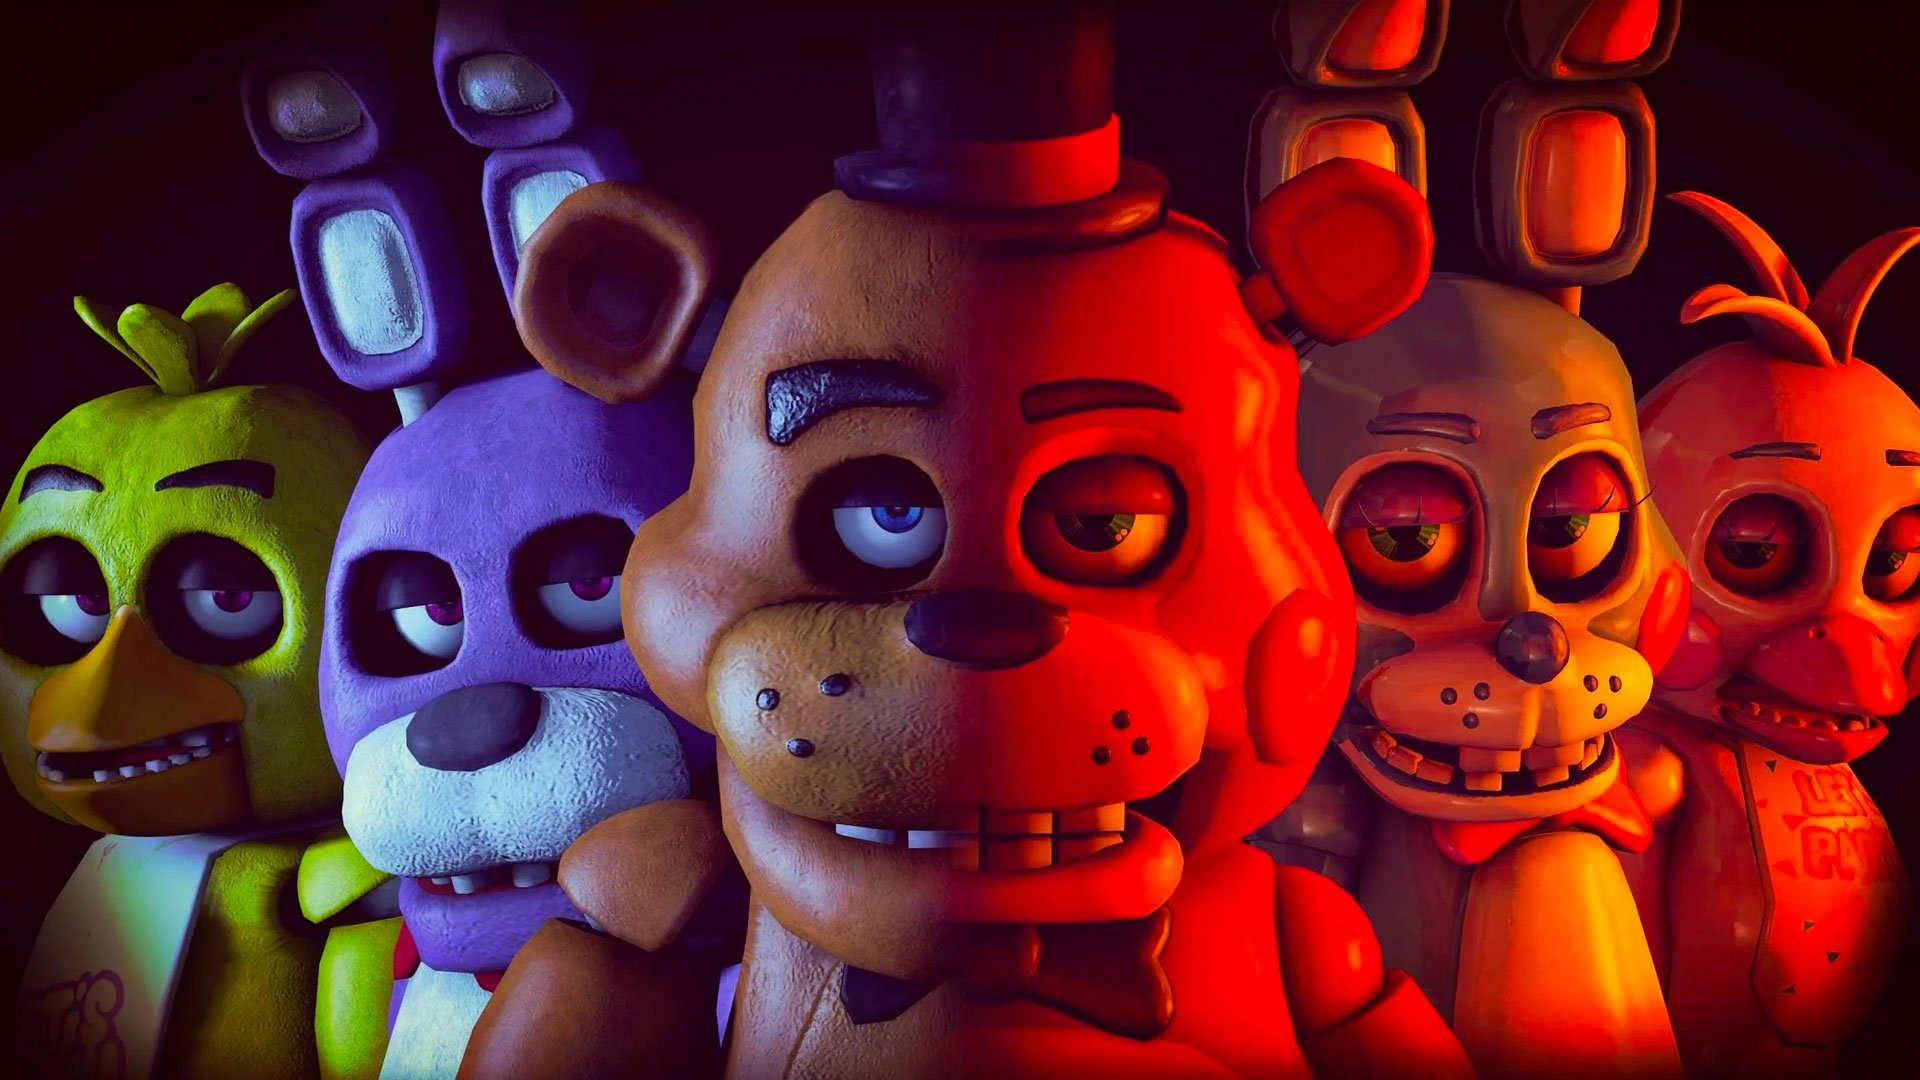 Creator Five Nights at Freddy's tengah mendanai games buatan fans dan remake dari original!